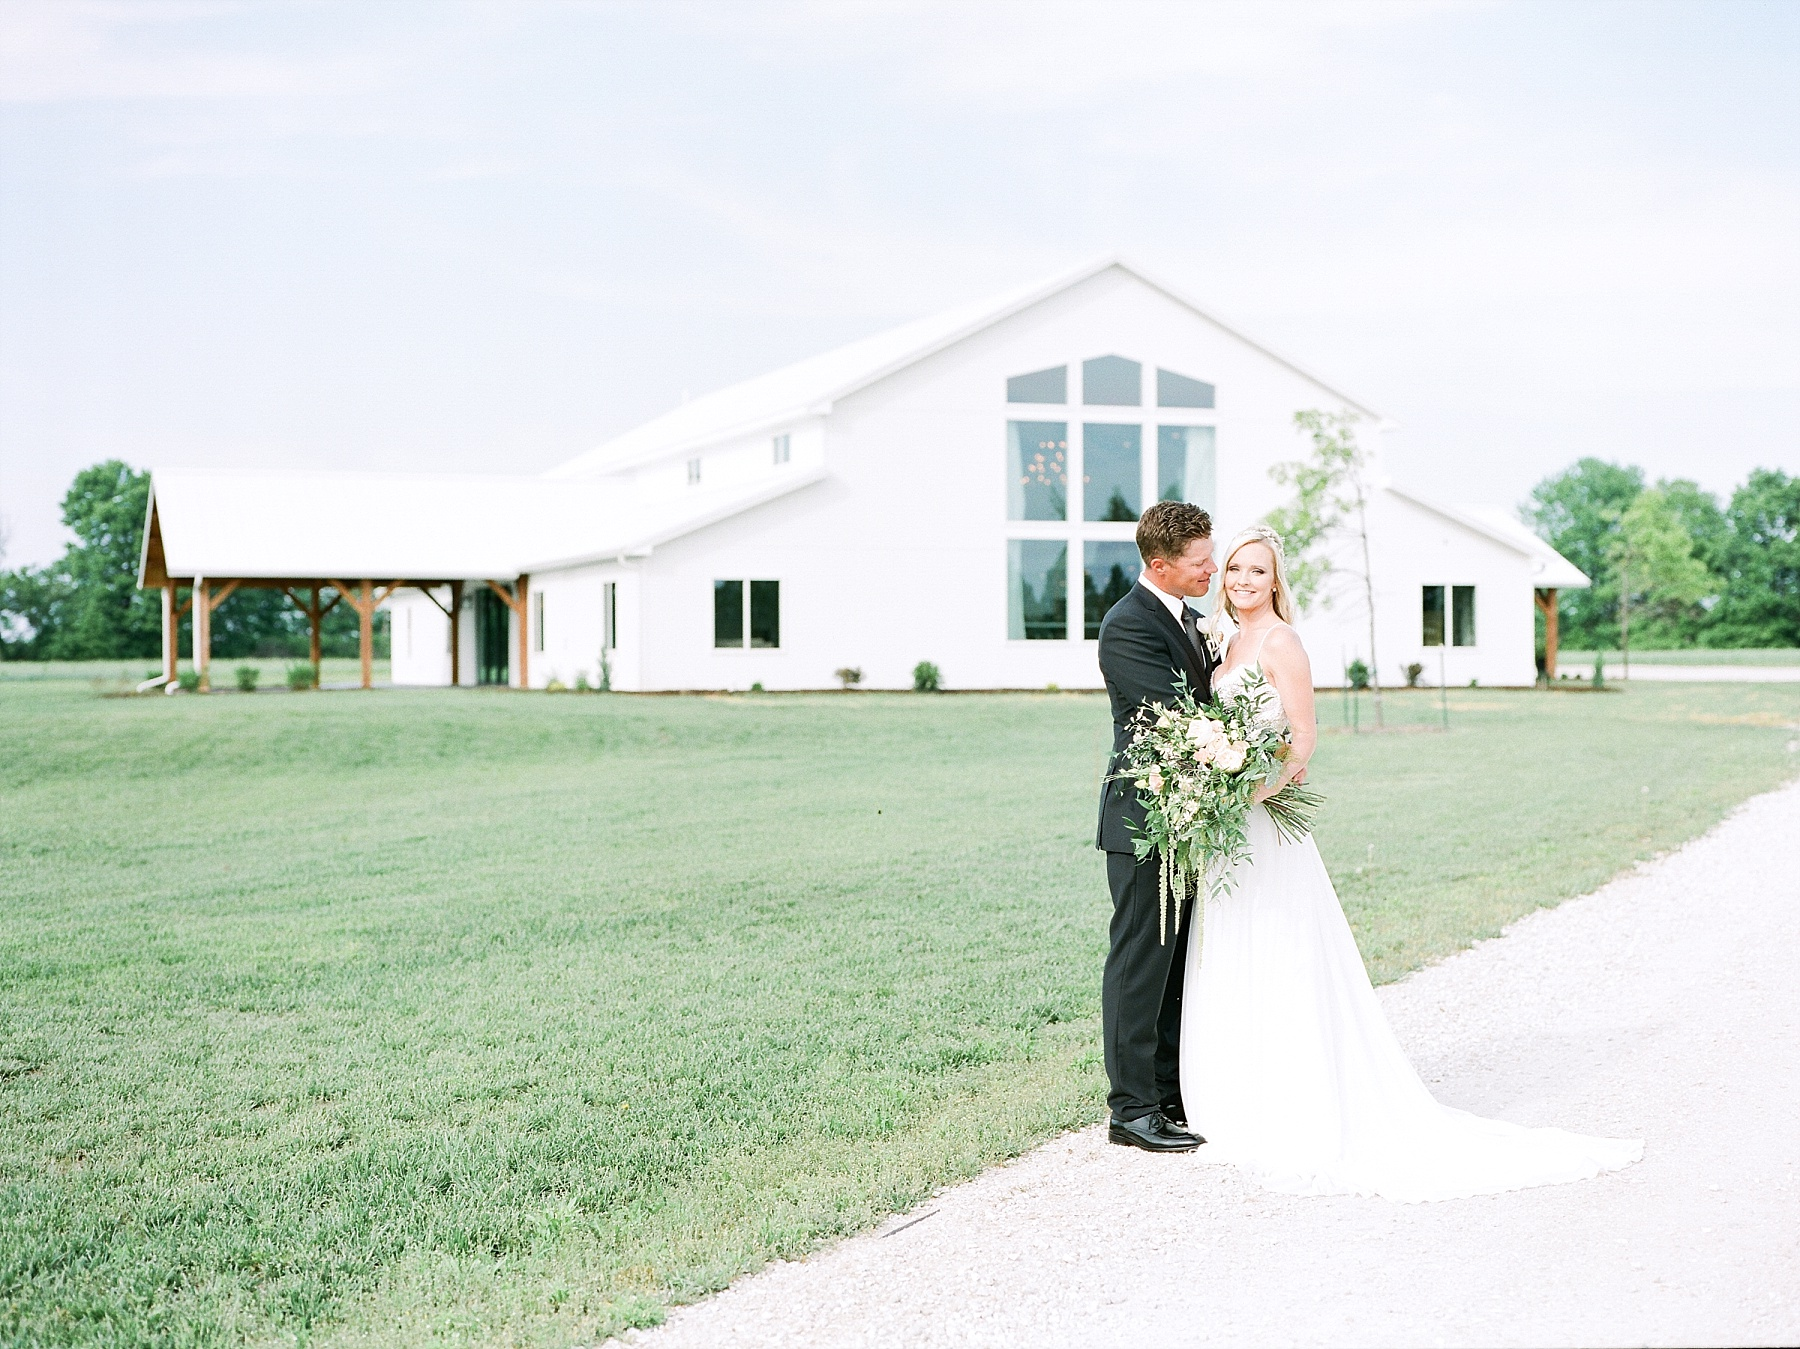 Textural Organic Wedding in All White Venue by Kelsi Kliethermes Wedding Photographer - Missouri, Midwest, and Destinations_0057.jpg